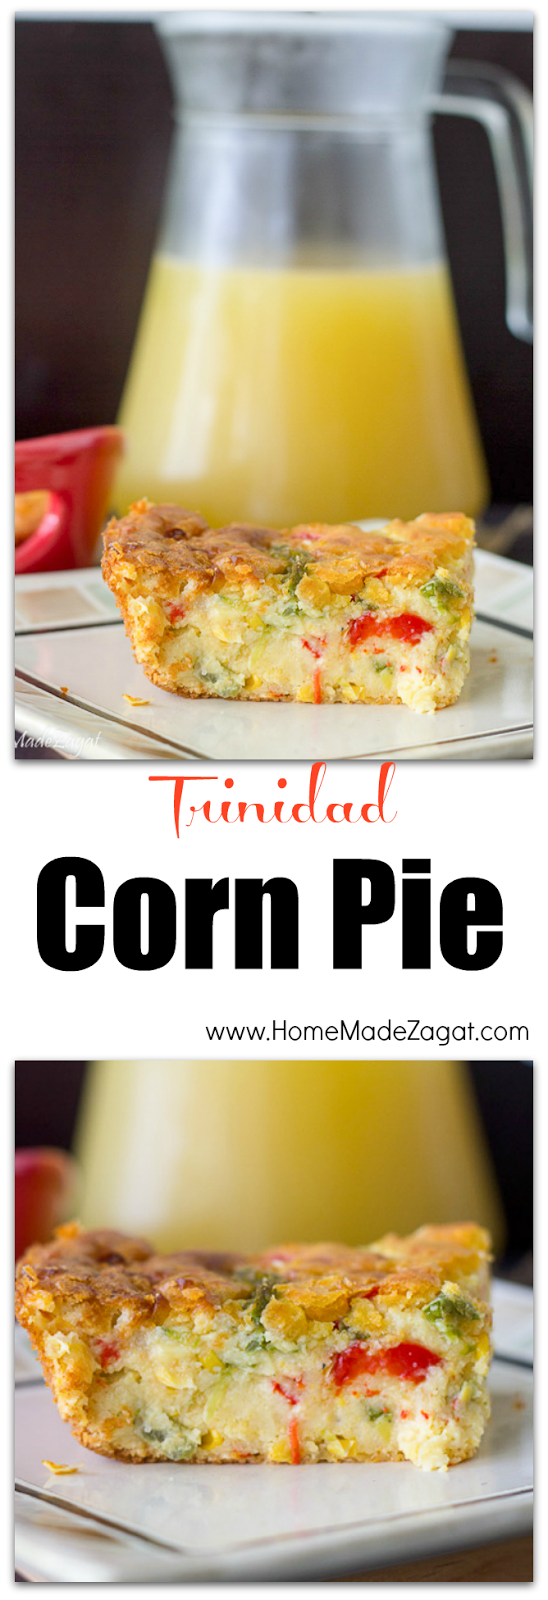 Trinidad Corn Pie